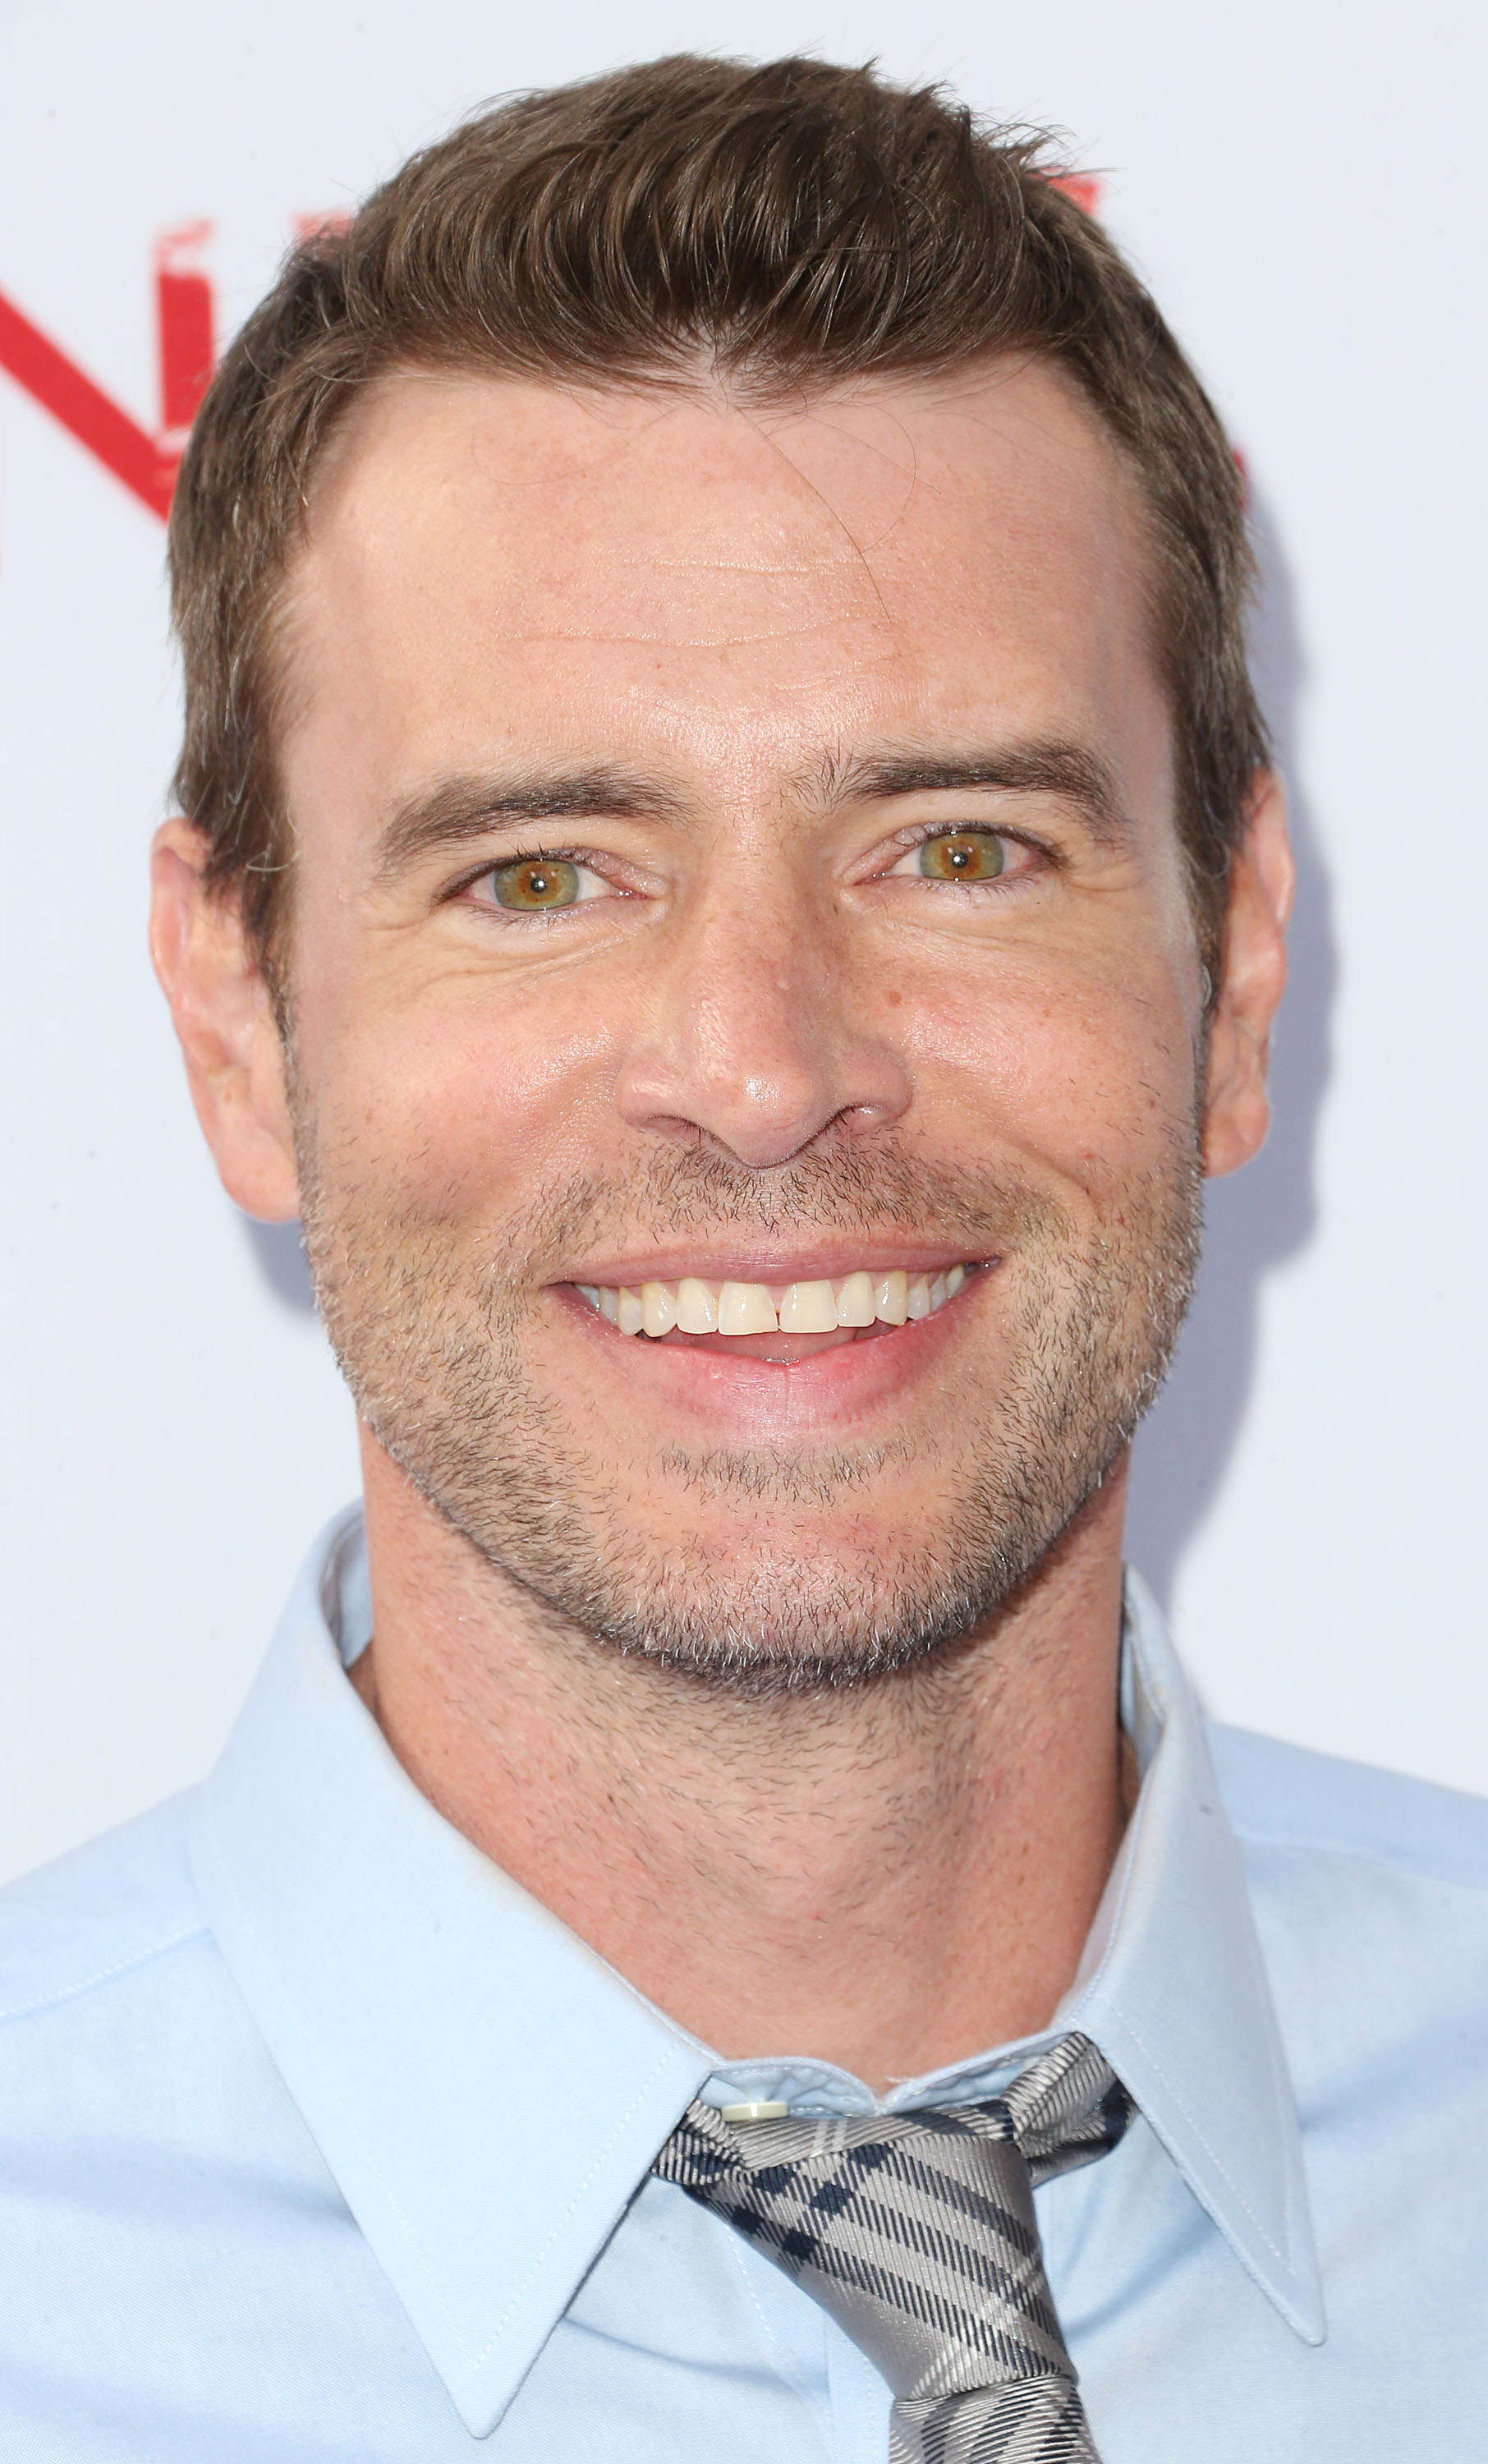 The 45-year old son of father Hugh Foley and mother Connie Foley, 185 cm tall Scott Foley in 2018 photo